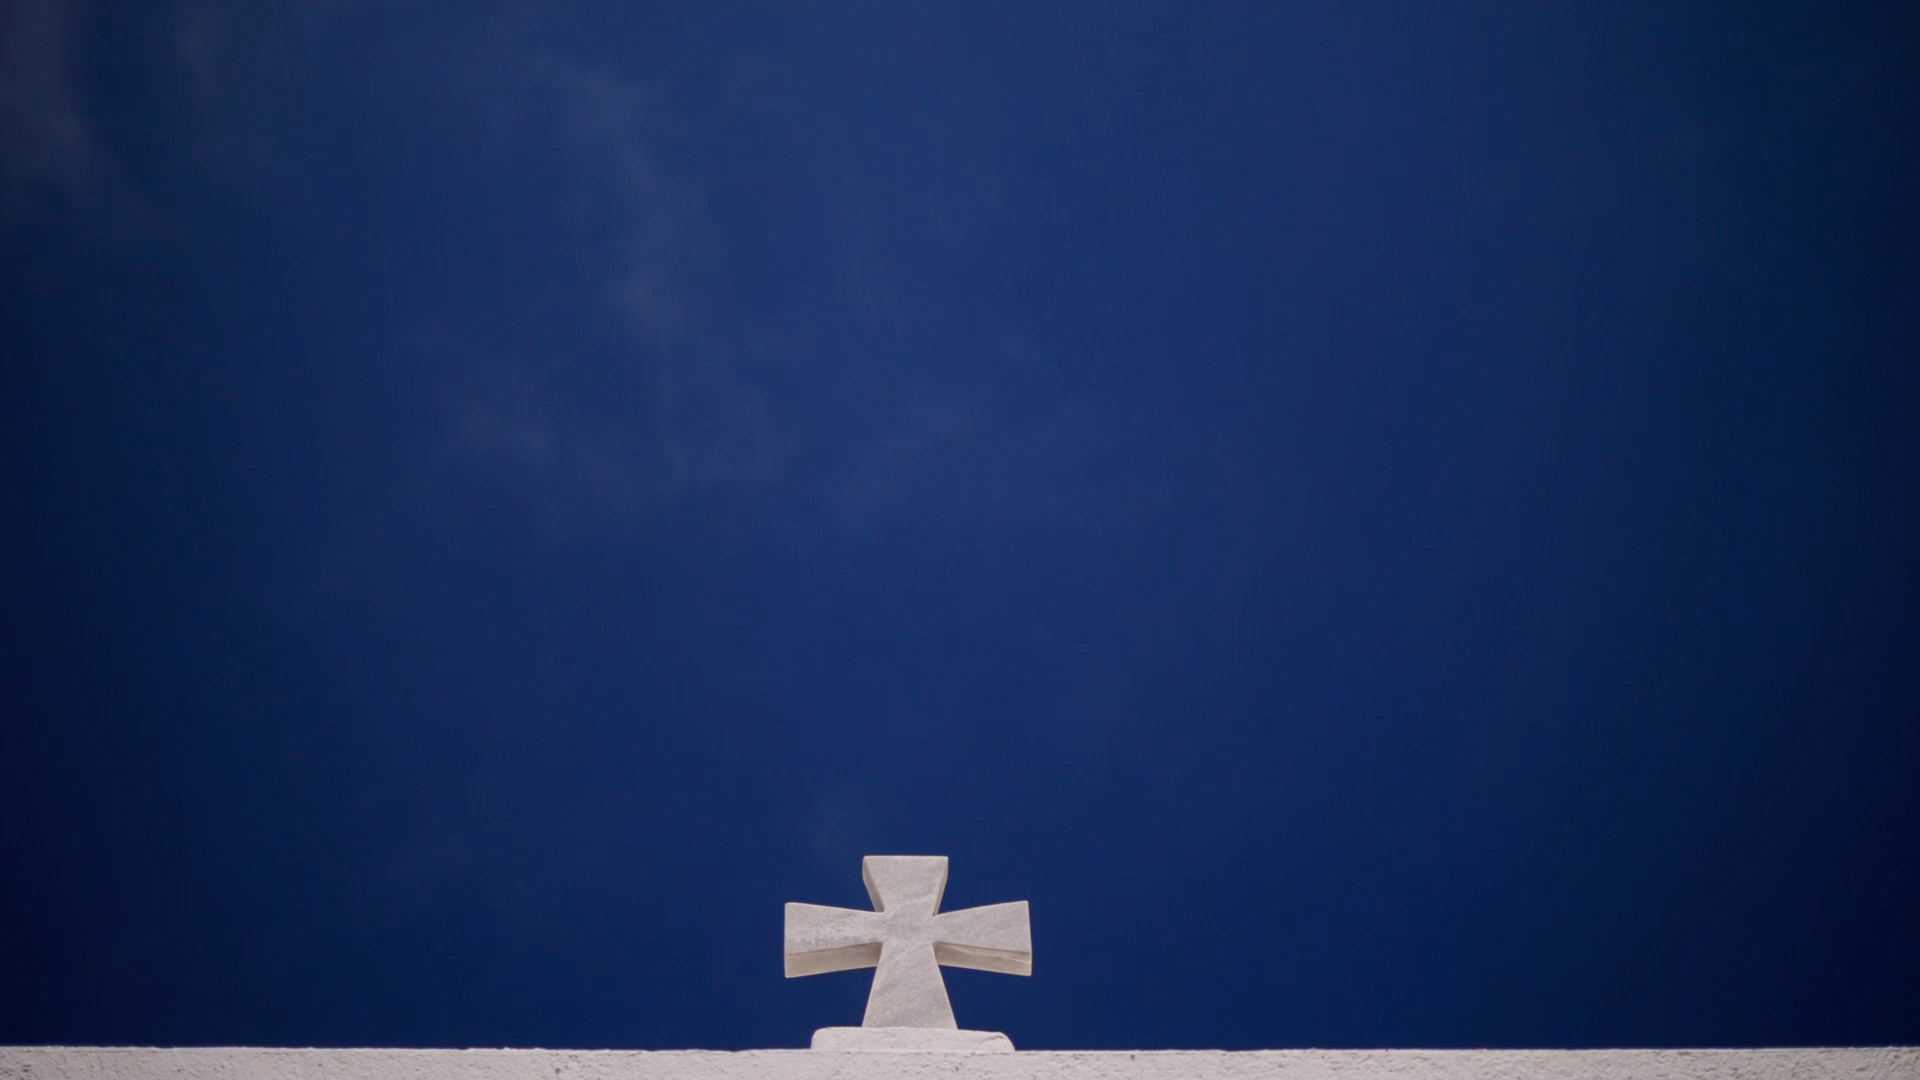 Santorini Wedding Videographer visits Santorini - shot shows church cross at the bottom of the frame with a luminous blue sky above, filling the rest of the frame.